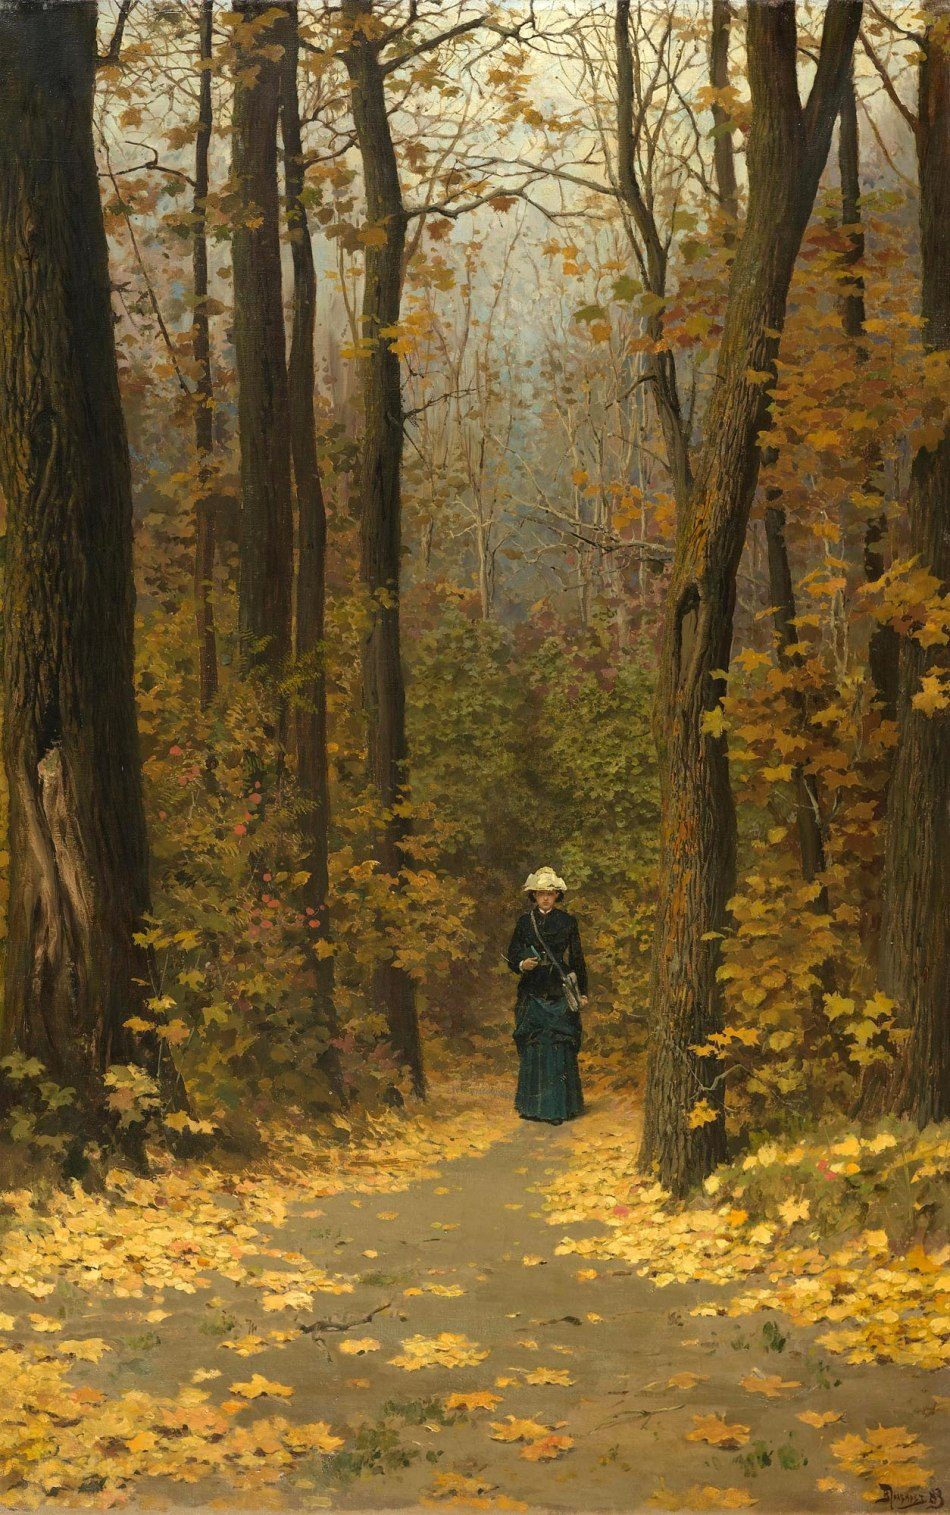 Vasily Polenov - private collection. Title: Spaziergängerin auf einem Waldweg. Date: 1883. Materials: oil on canvas. Dimensions: 114.5 x 67.3 cm. Sold by Koller Auktionen in Zürich, on March 27, 2009.  Source: http://www.fabulousmasterpieces.co.uk/userimages/vasily.jpg. I have changed the contrast of the original photo.